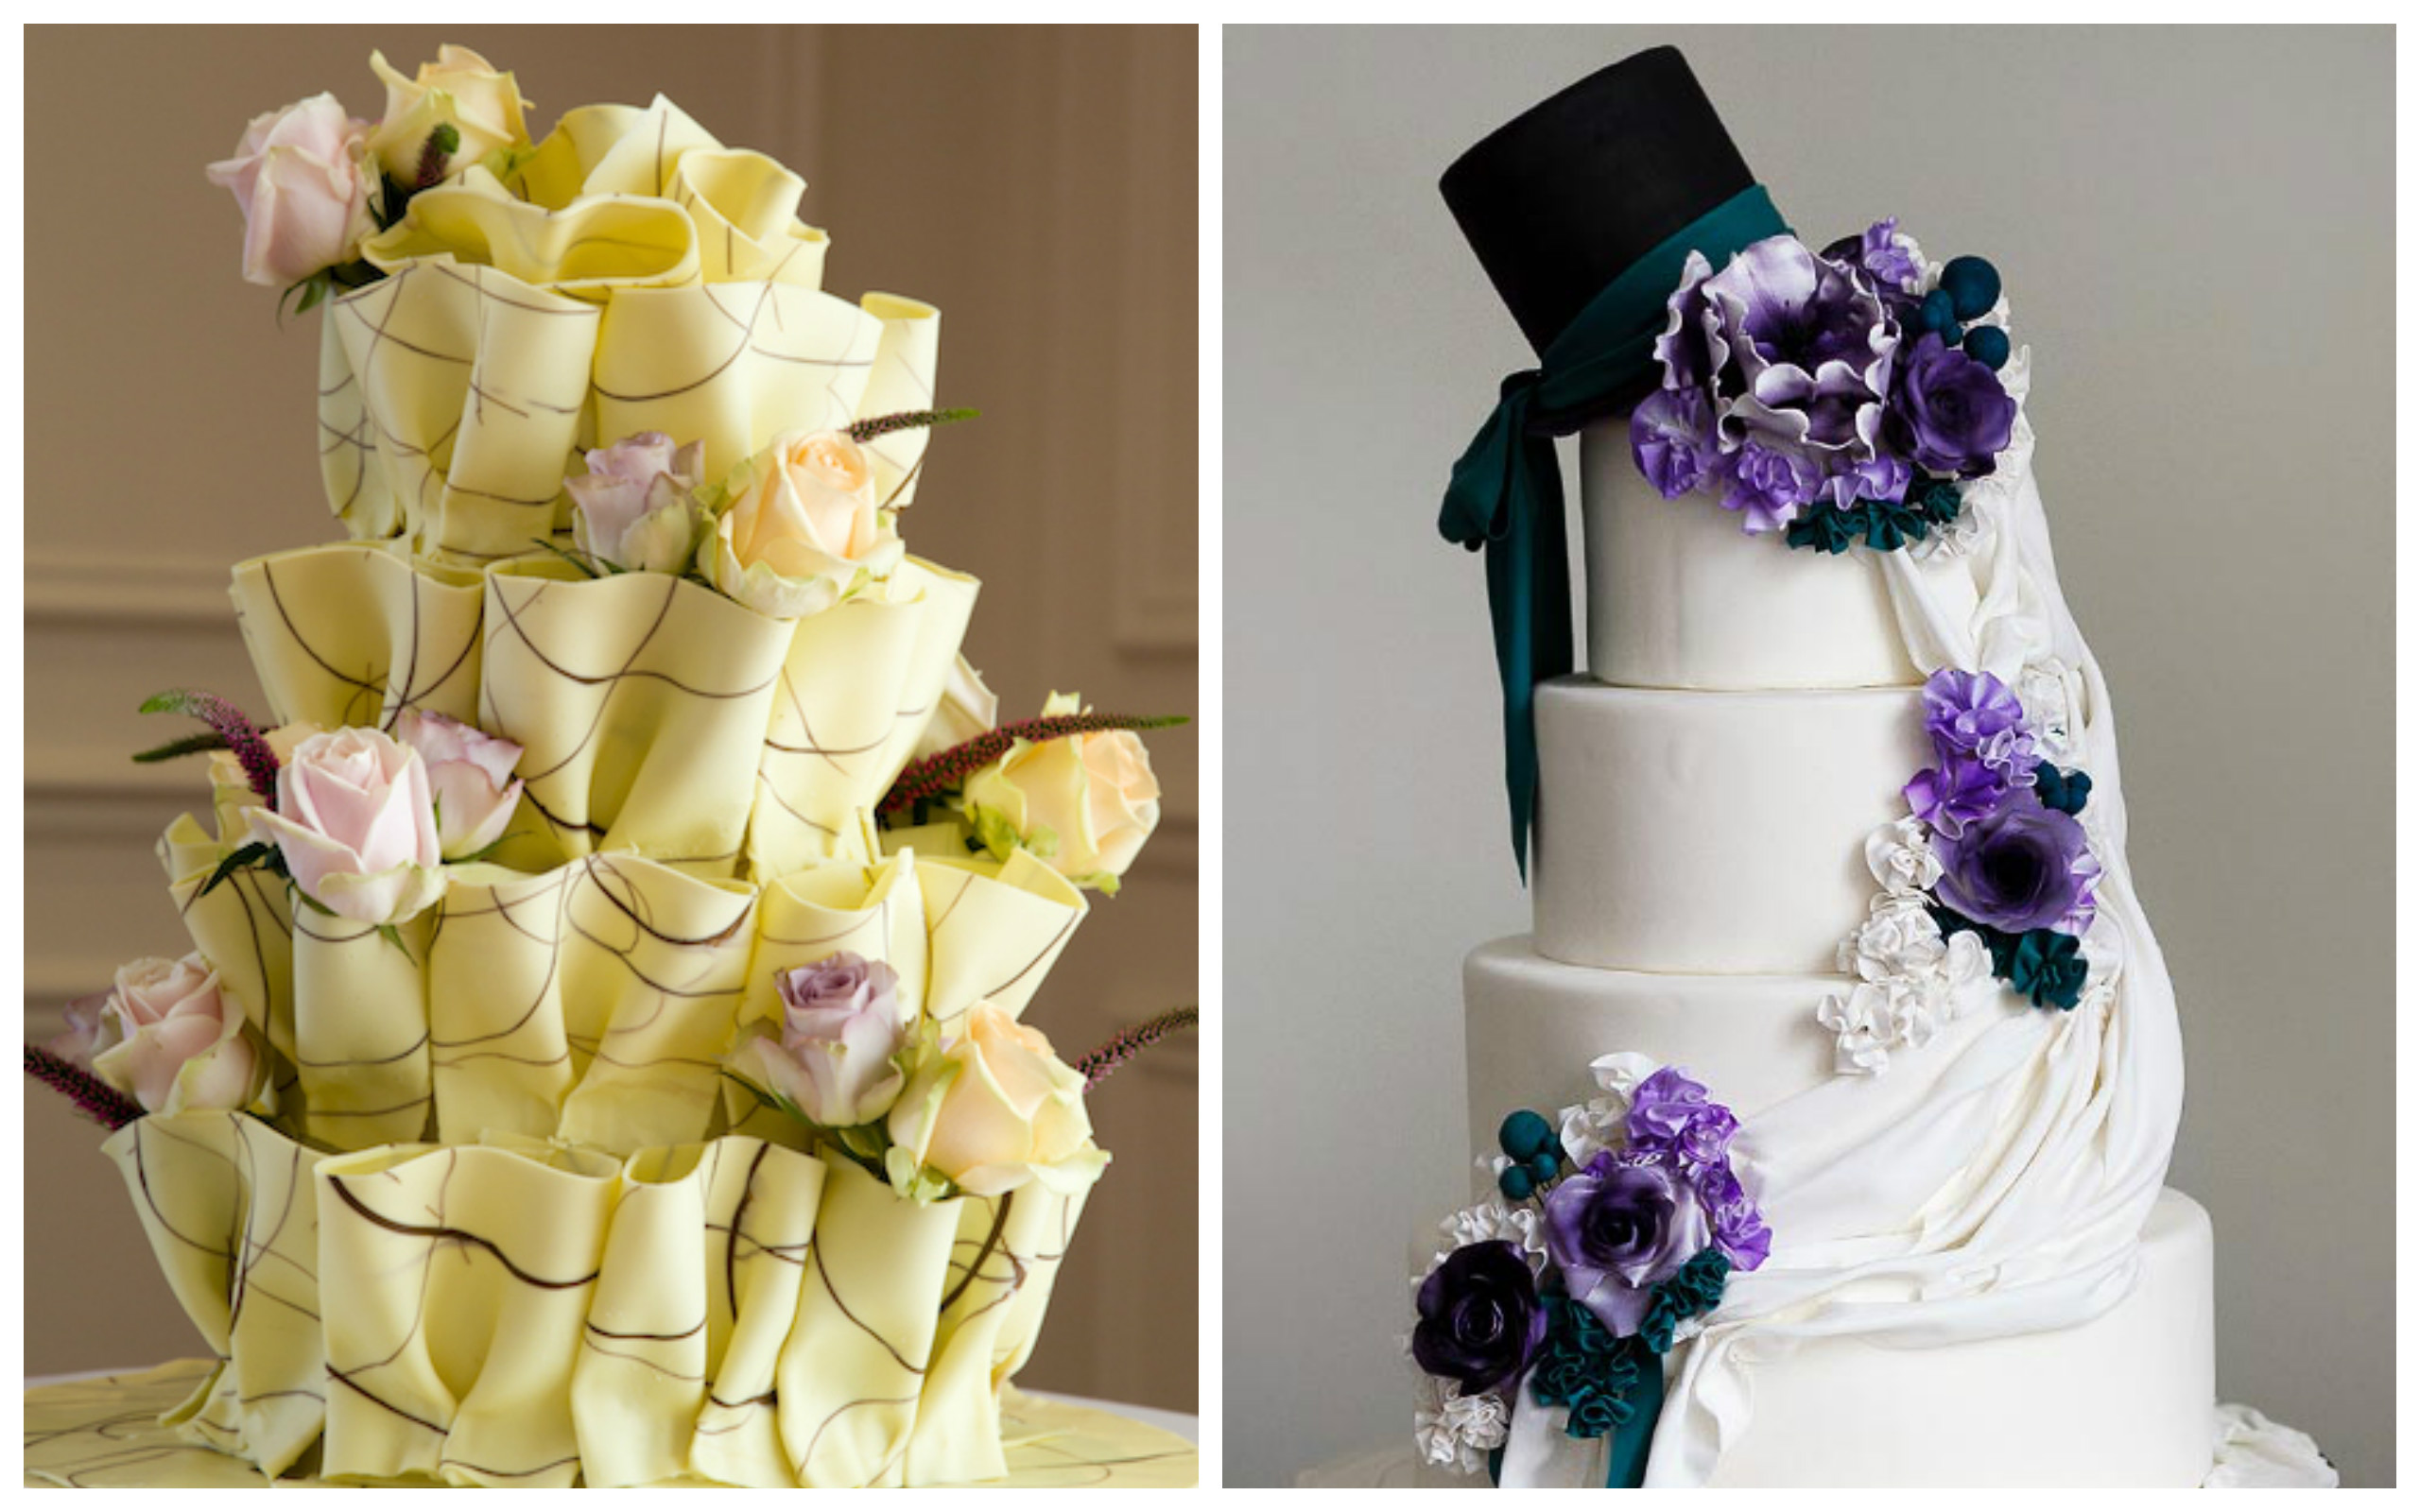 Top Beautiful Wedding Cakes for Any Month - Amazing Cake Ideas